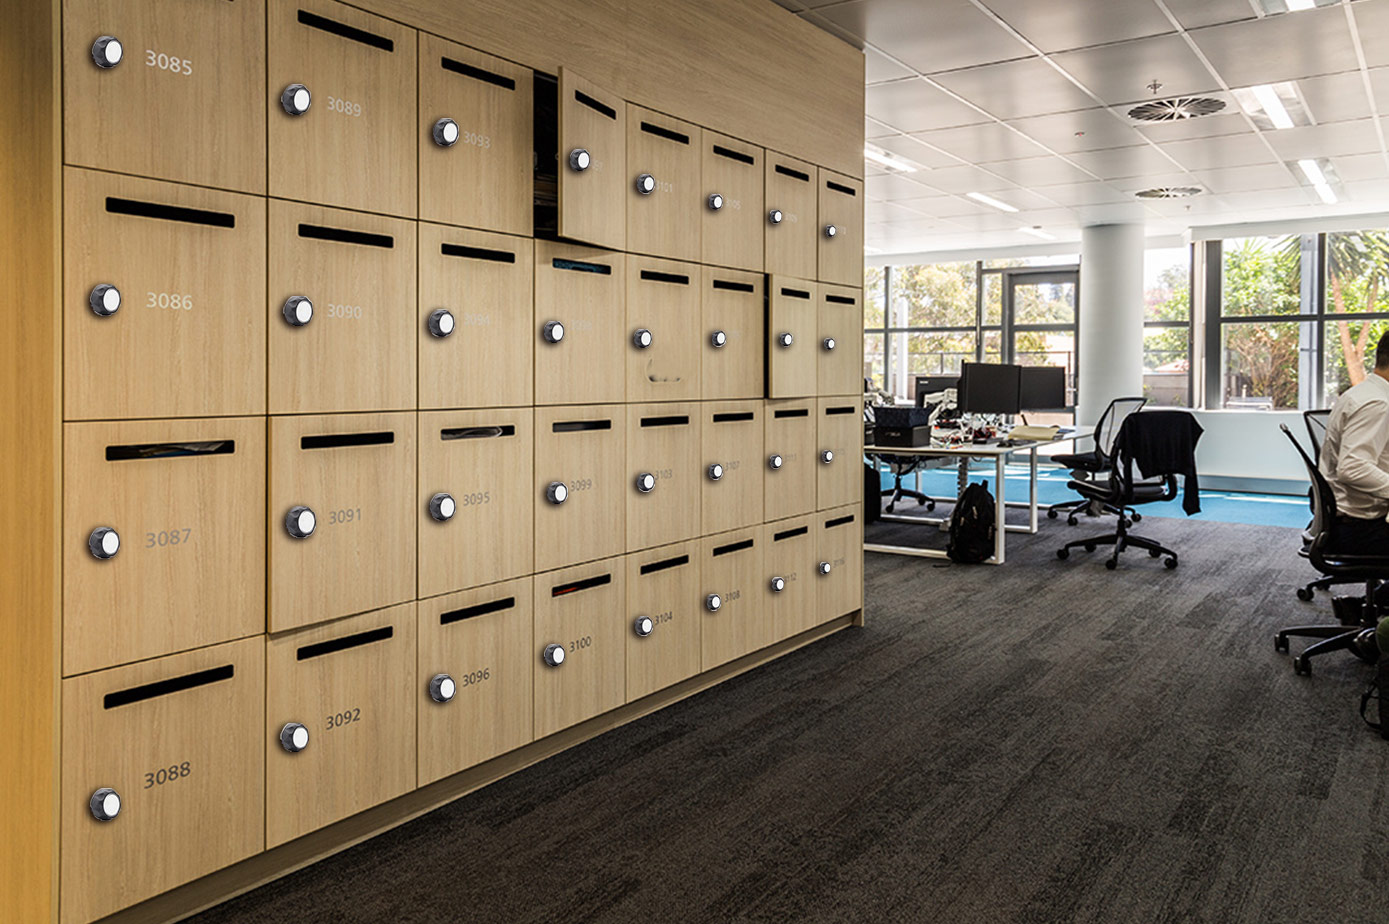 Make office furniture locks light up your office life